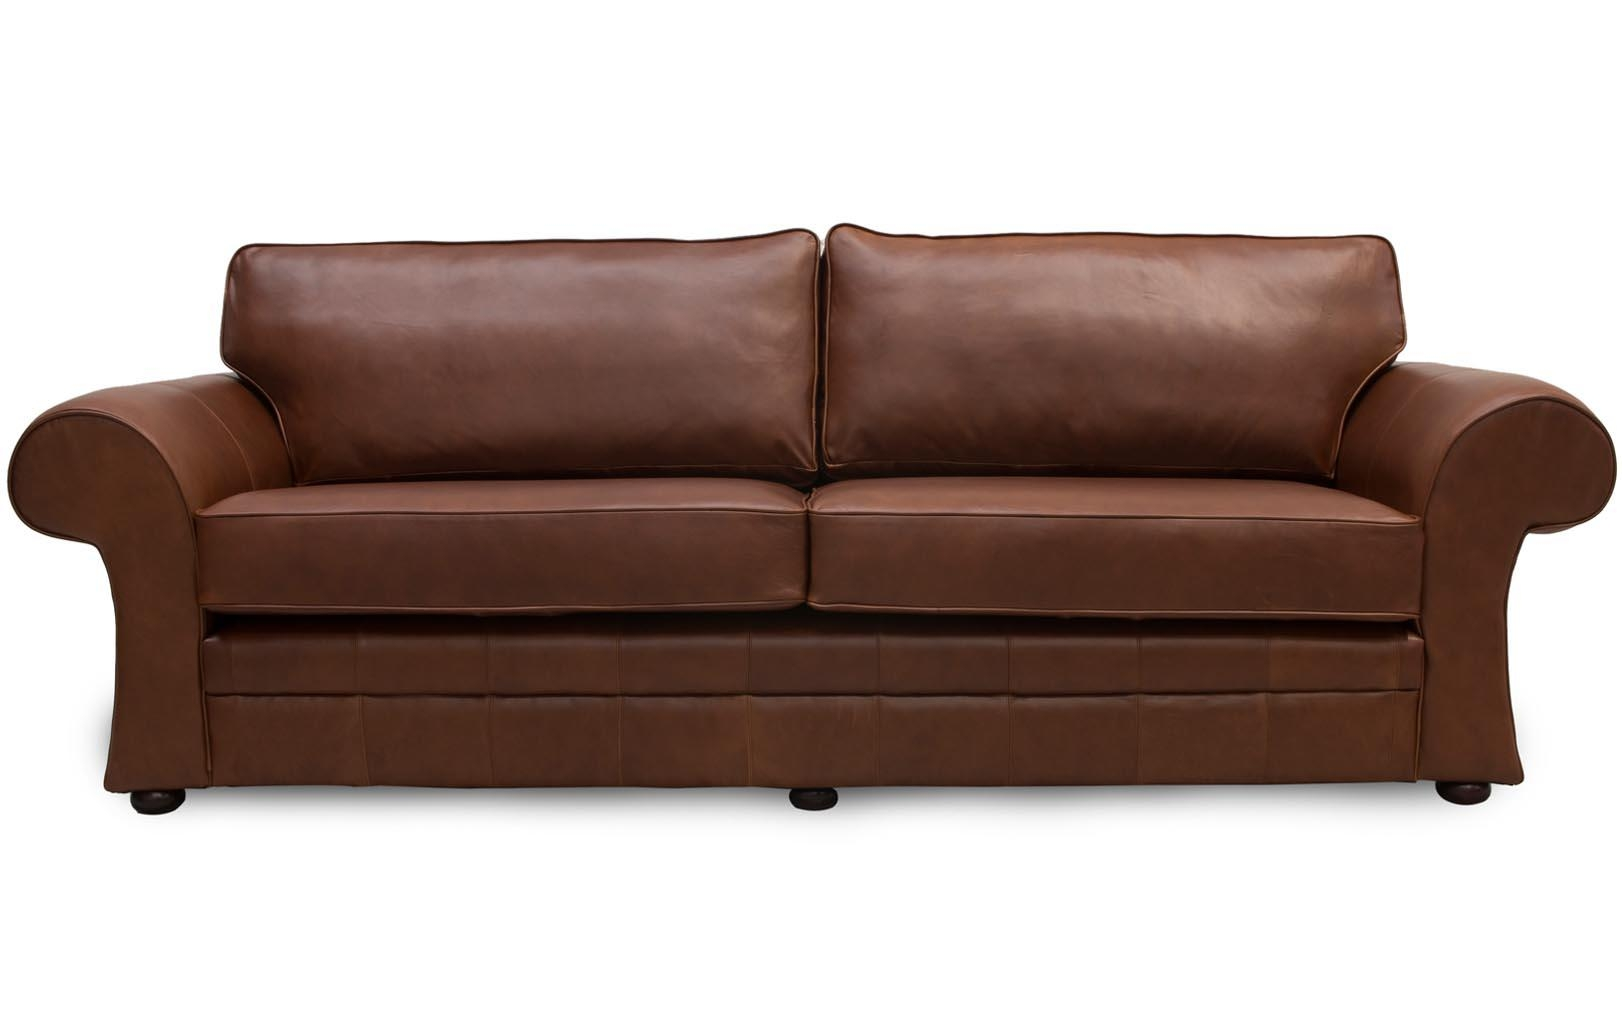 Cavan Scroll Arm Leather Sofa Made In Manchesterthe Leather For Manchester Sofas (Image 3 of